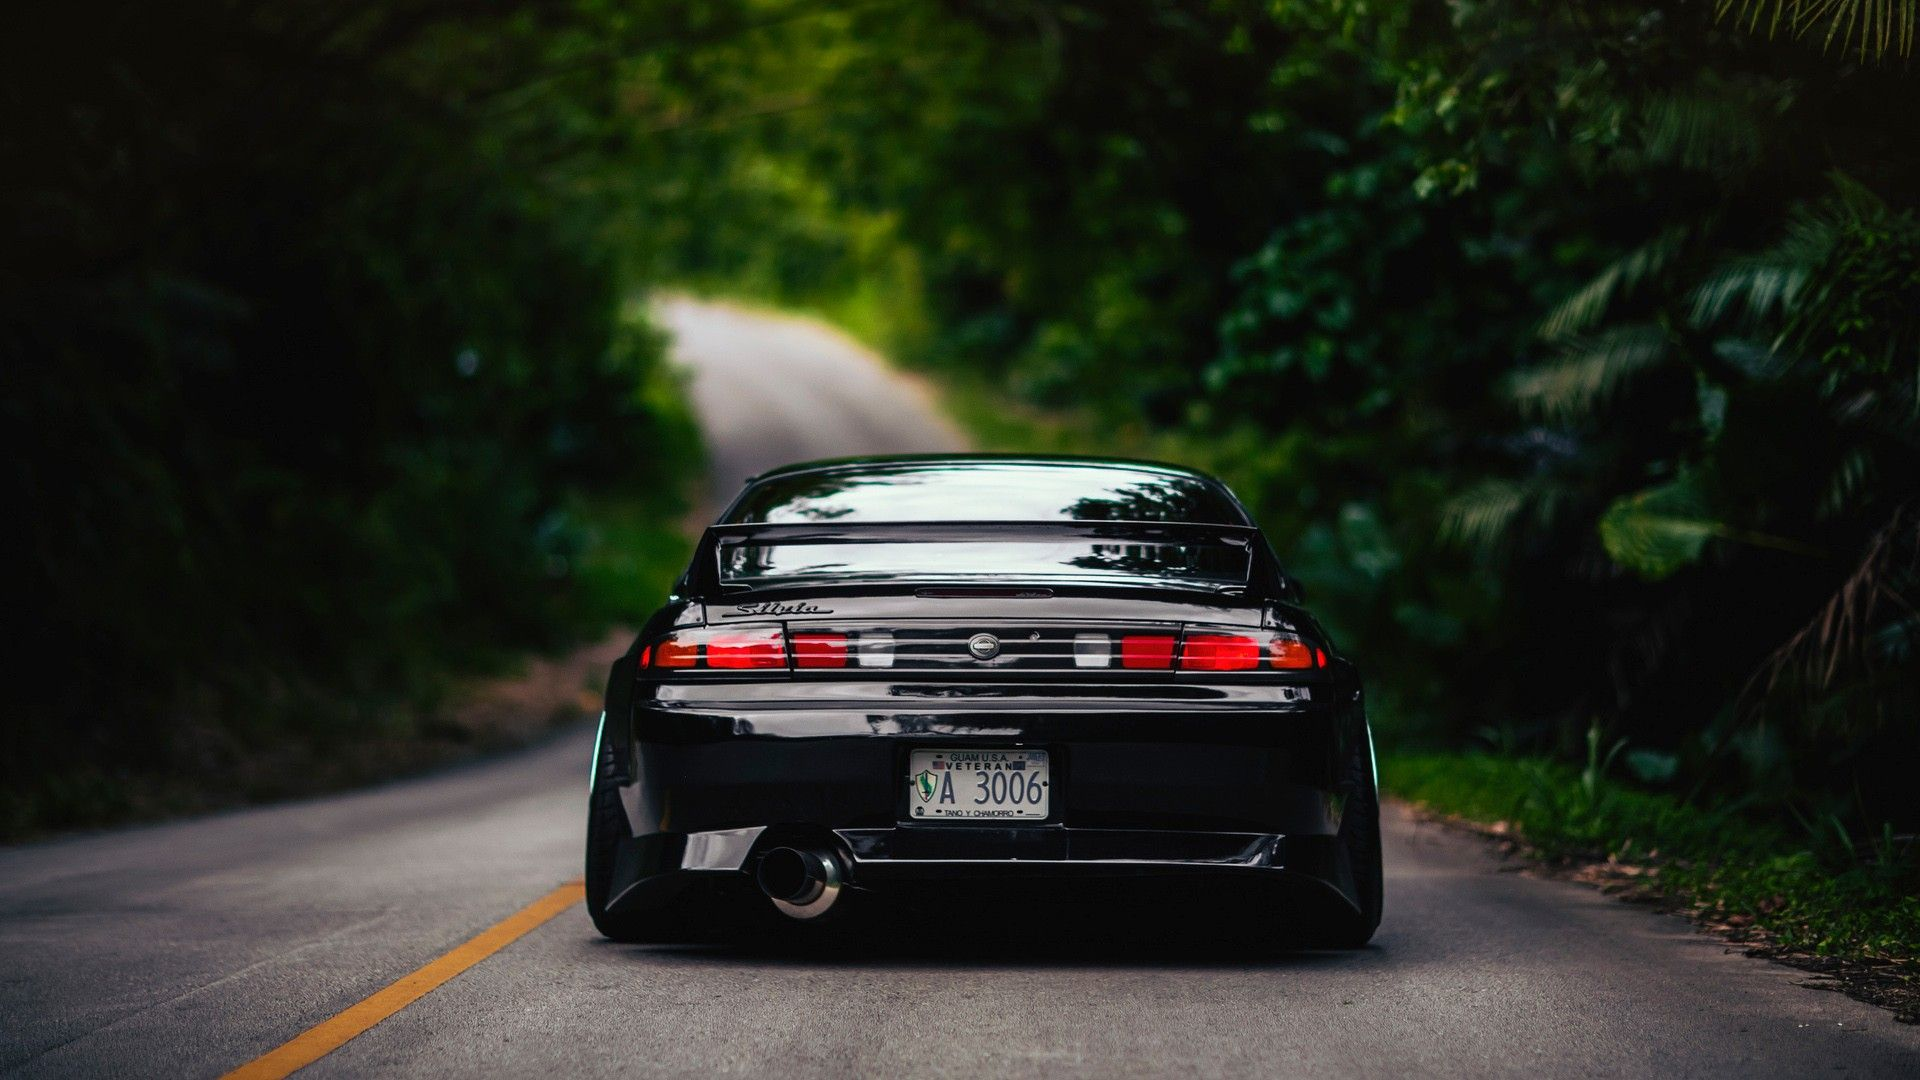 P Jdm Honda Wallpapers Streets Cars Roads Vehicles 1920x1080 JDM 58